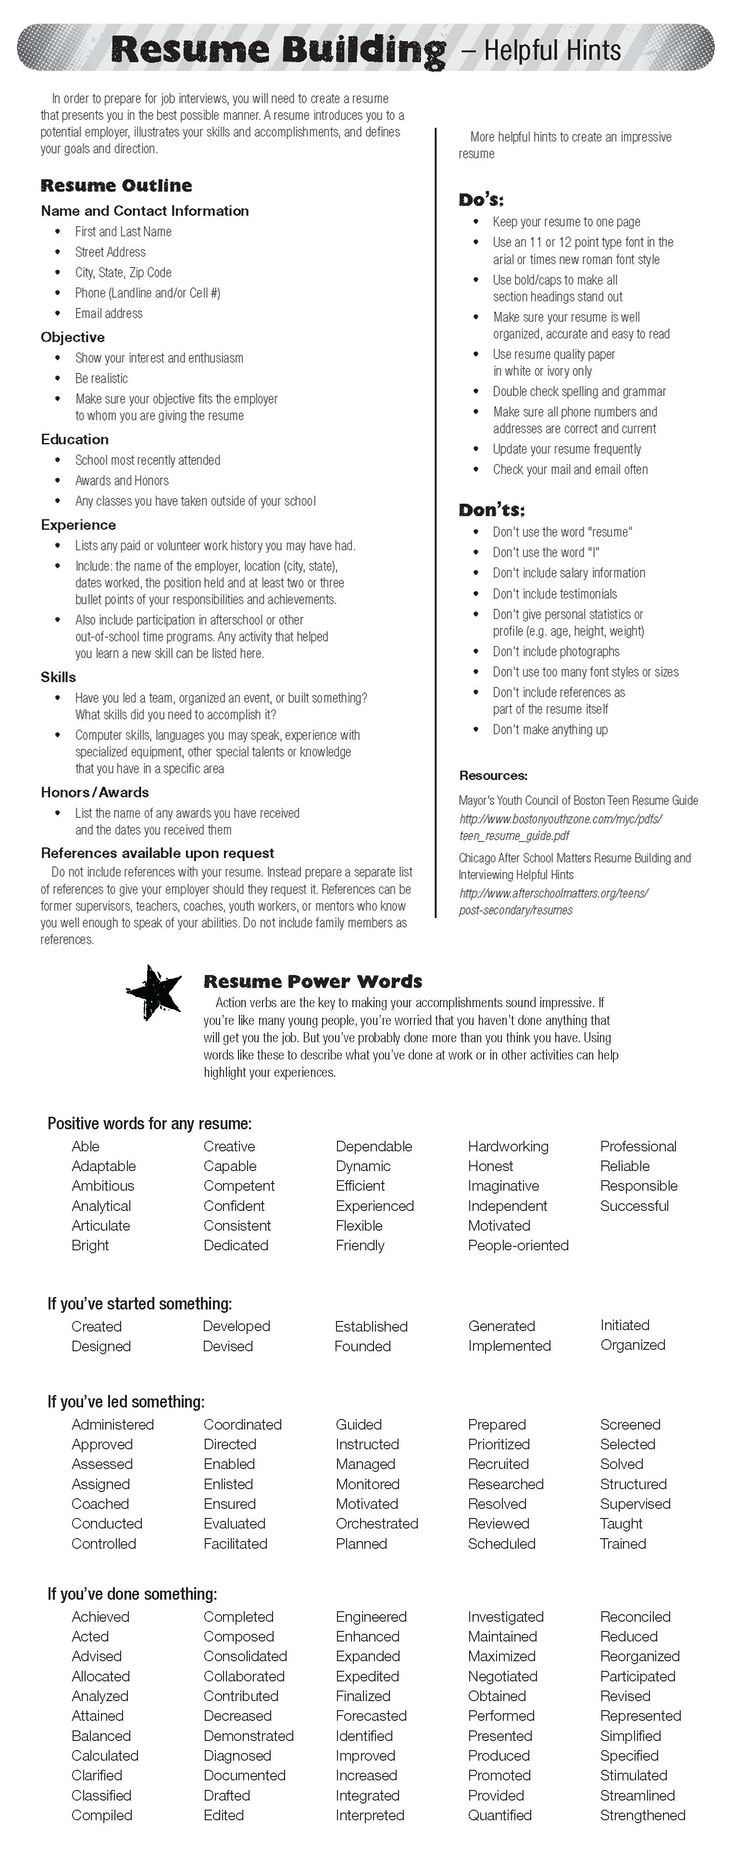 Picnictoimpeachus  Pretty  Ideas About Resume On Pinterest  Cv Format Resume Cv And  With Foxy  Ideas About Resume On Pinterest  Cv Format Resume Cv And Resume Templates With Enchanting Government Resume Examples Also High School Sample Resume In Addition Sending A Resume Via Email And Pharmaceutical Sales Rep Resume As Well As Resume Multiple Positions Same Company Additionally Title For Resume From Pinterestcom With Picnictoimpeachus  Foxy  Ideas About Resume On Pinterest  Cv Format Resume Cv And  With Enchanting  Ideas About Resume On Pinterest  Cv Format Resume Cv And Resume Templates And Pretty Government Resume Examples Also High School Sample Resume In Addition Sending A Resume Via Email From Pinterestcom